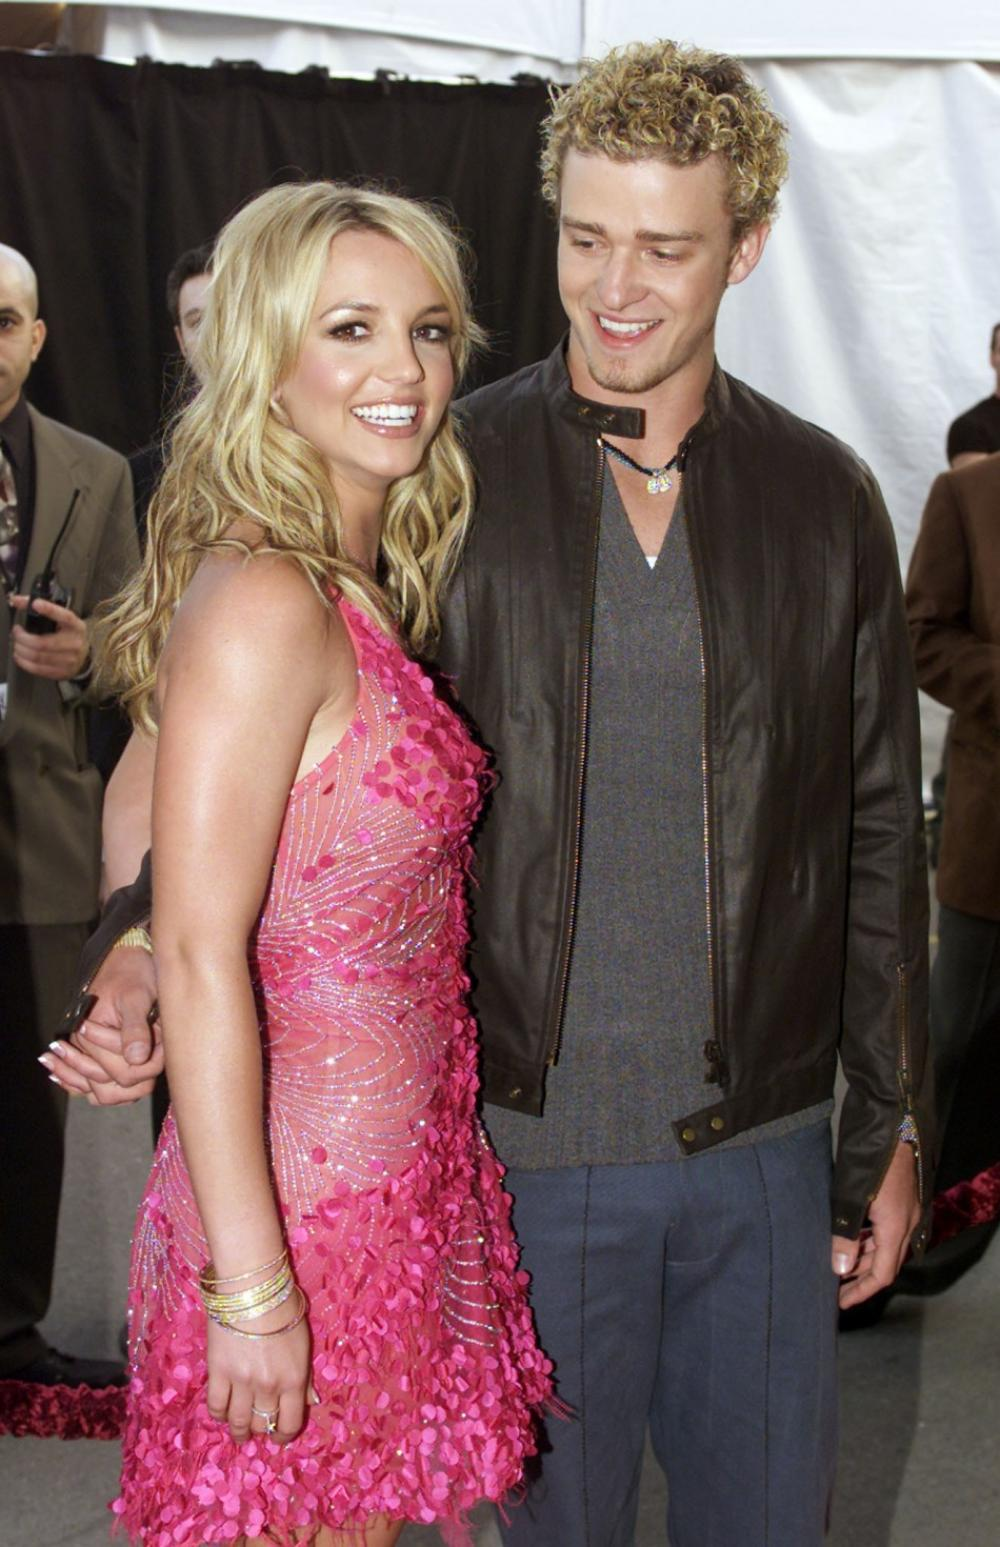 britney spears britney spears with justin timberlake pics. Black Bedroom Furniture Sets. Home Design Ideas